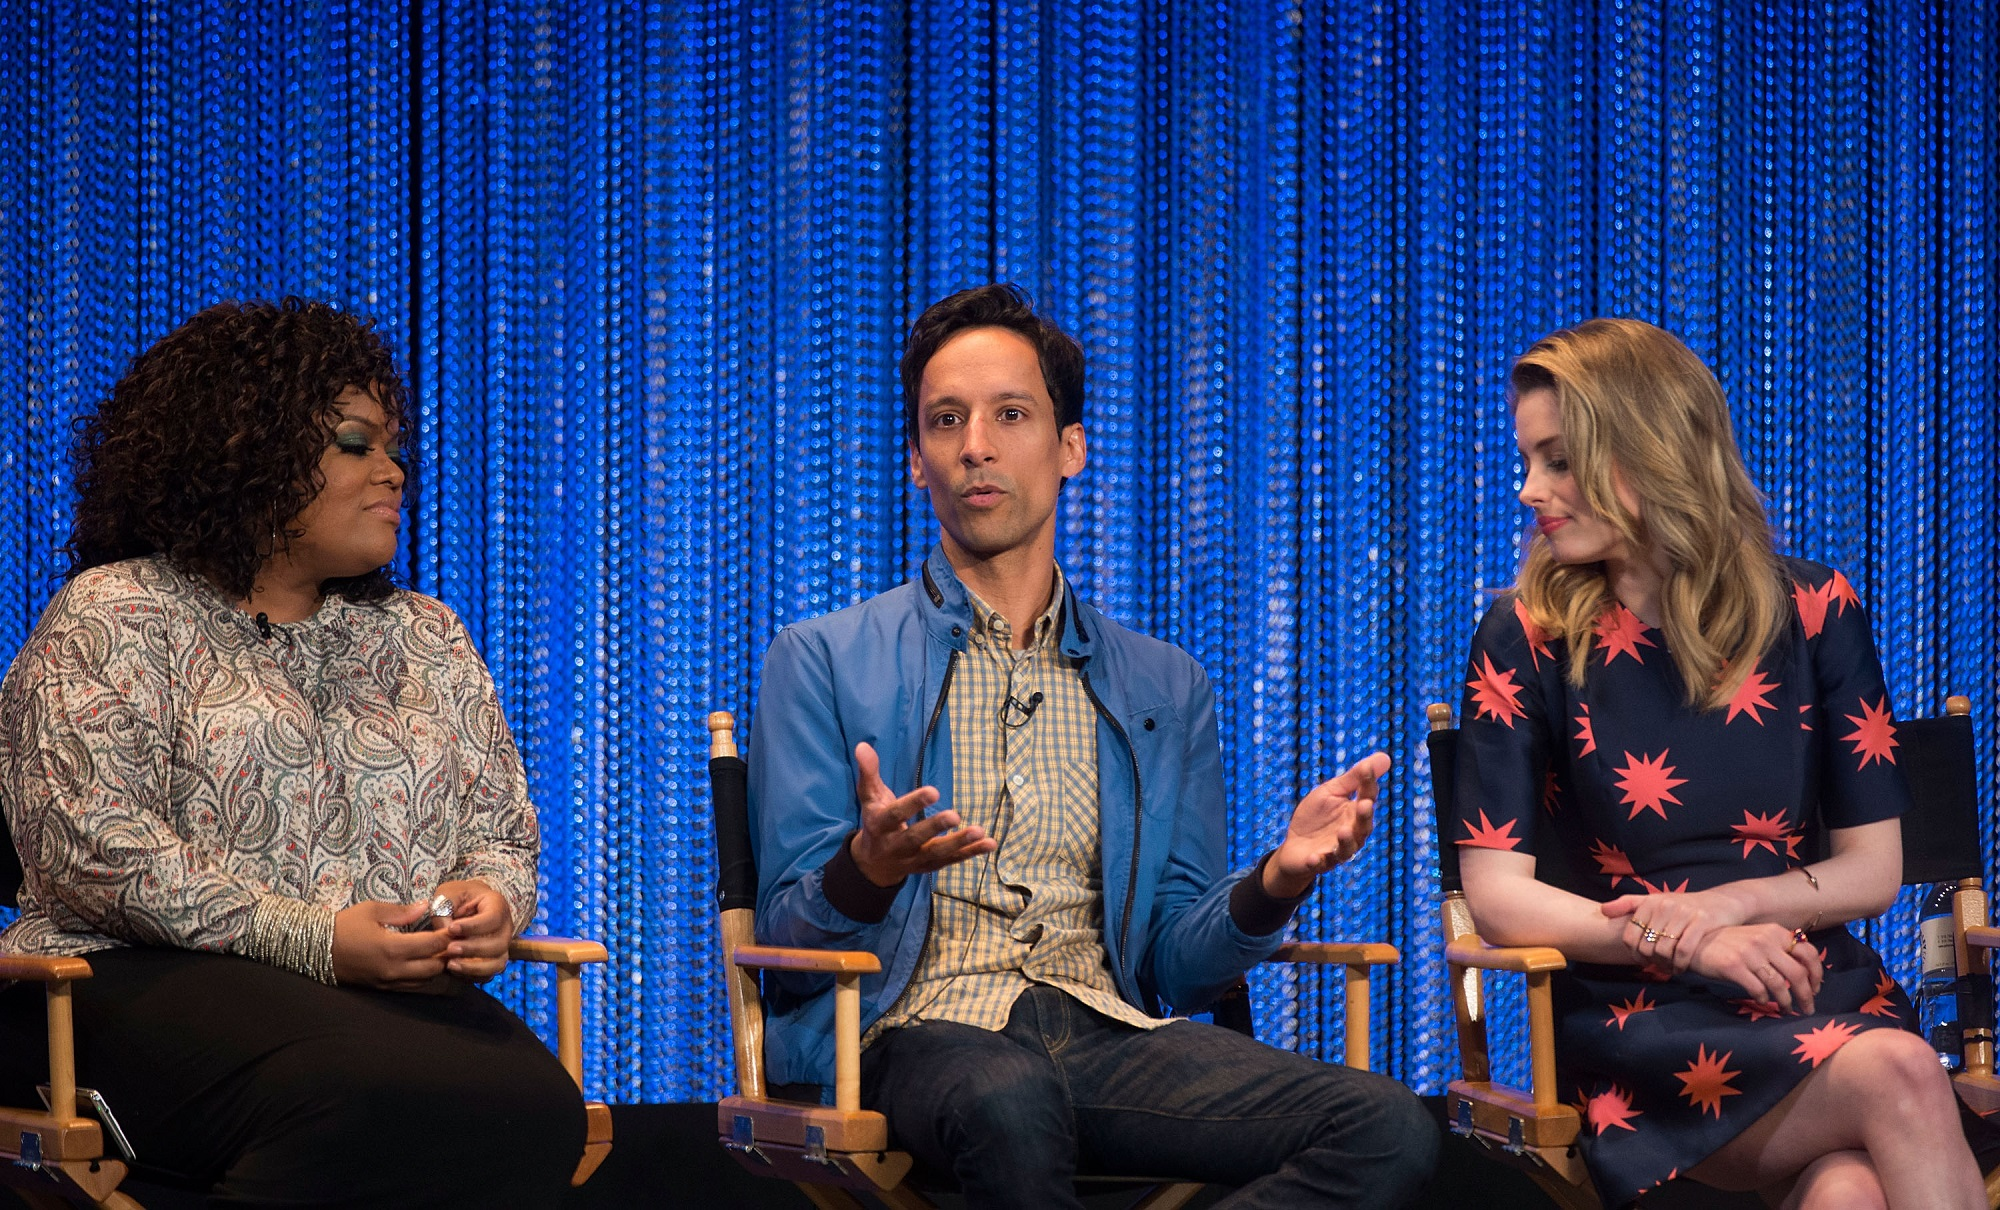 Yvette Nicole Brown, Danny Pudi, and Gillian Jacobs of Community